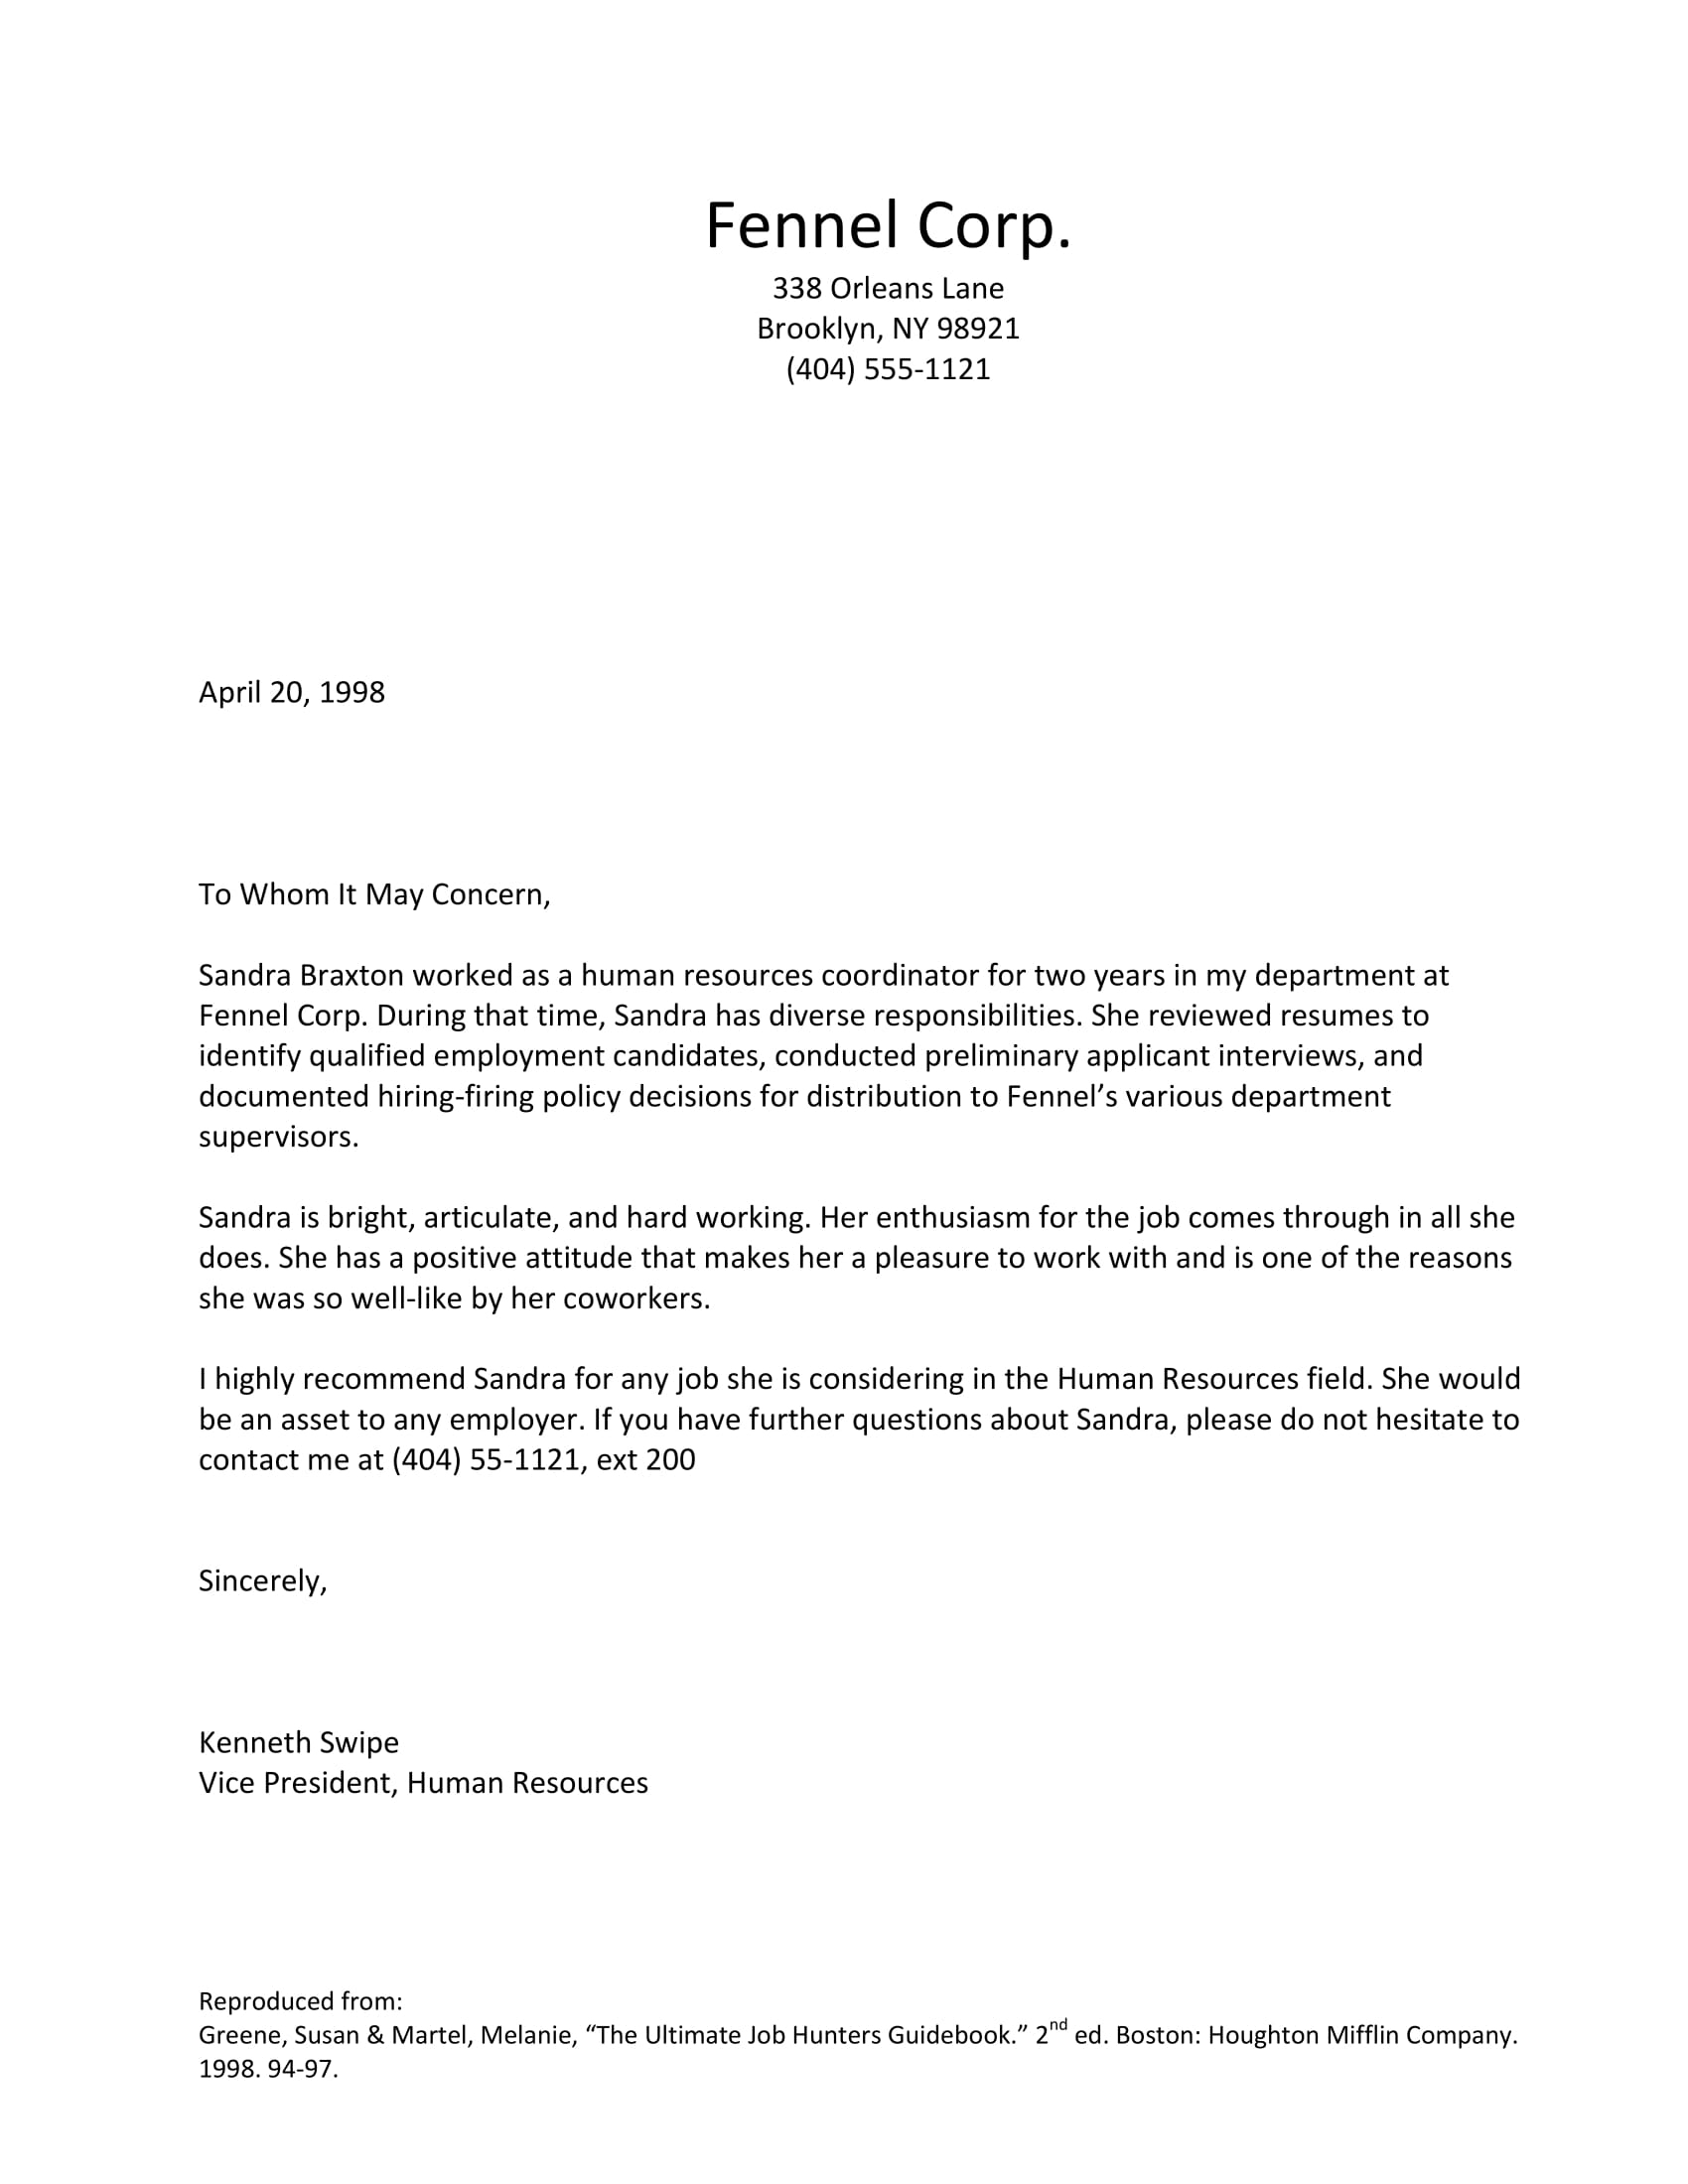 recommendation letter sample 2